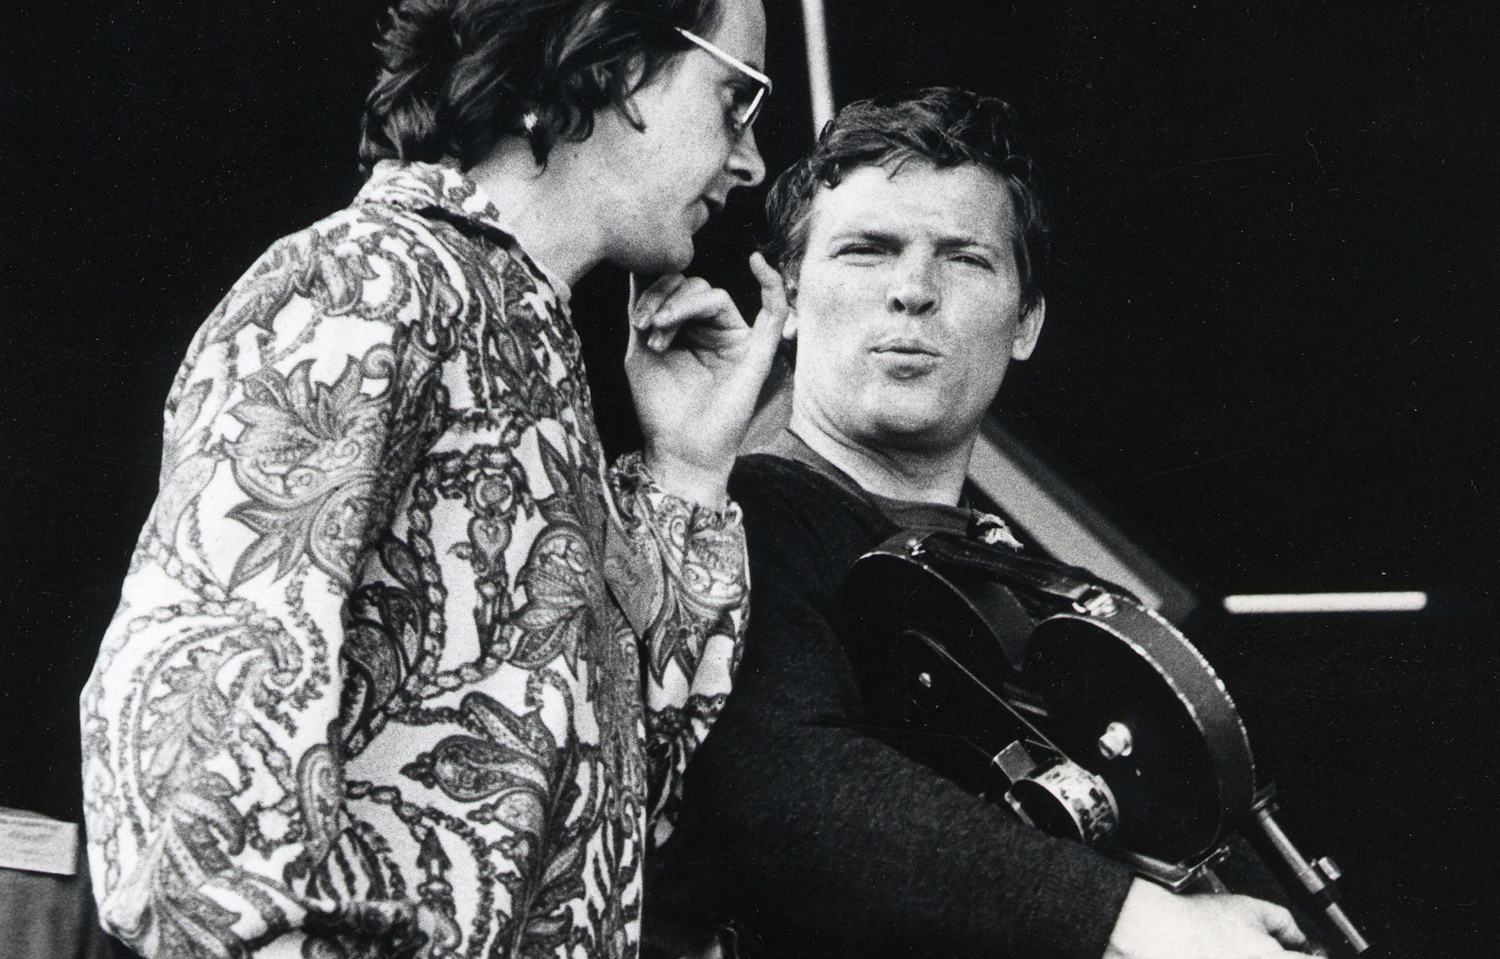 Interview: D.A. Pennebaker on Don't Look Back, Bob Dylan, and More